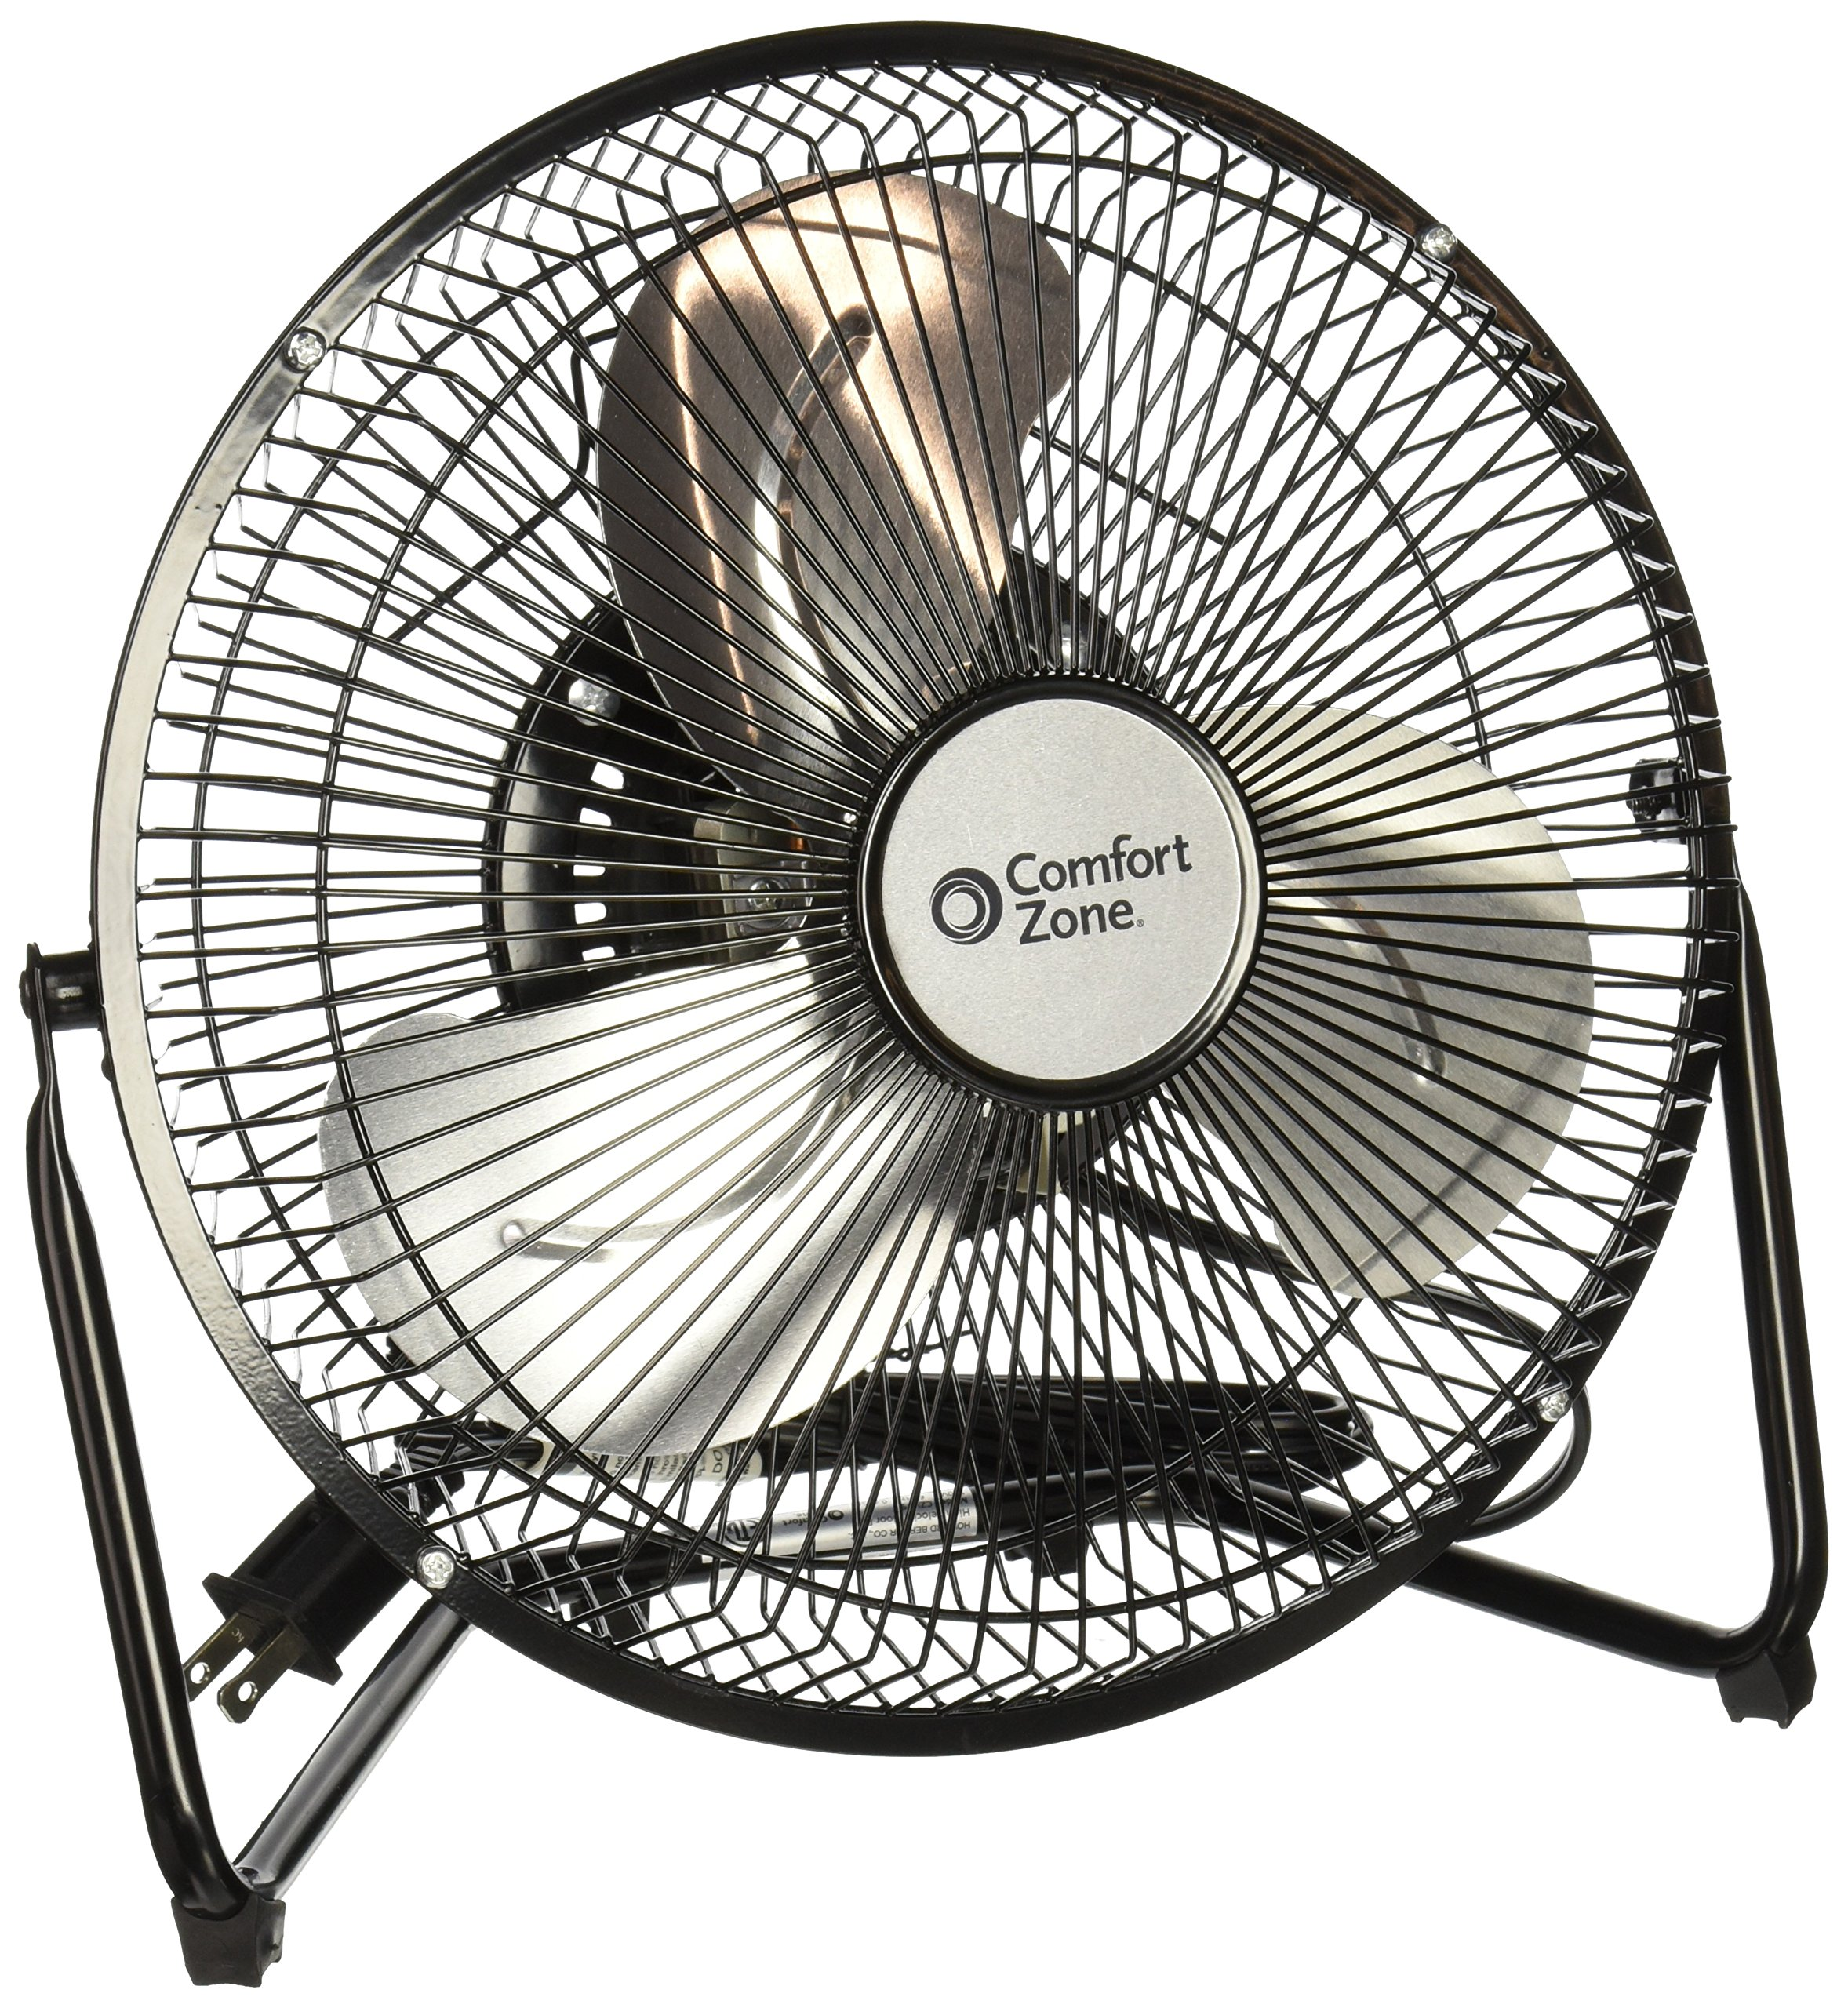 New Electric Fan : New electric fan speed high velocity cradle can be mount